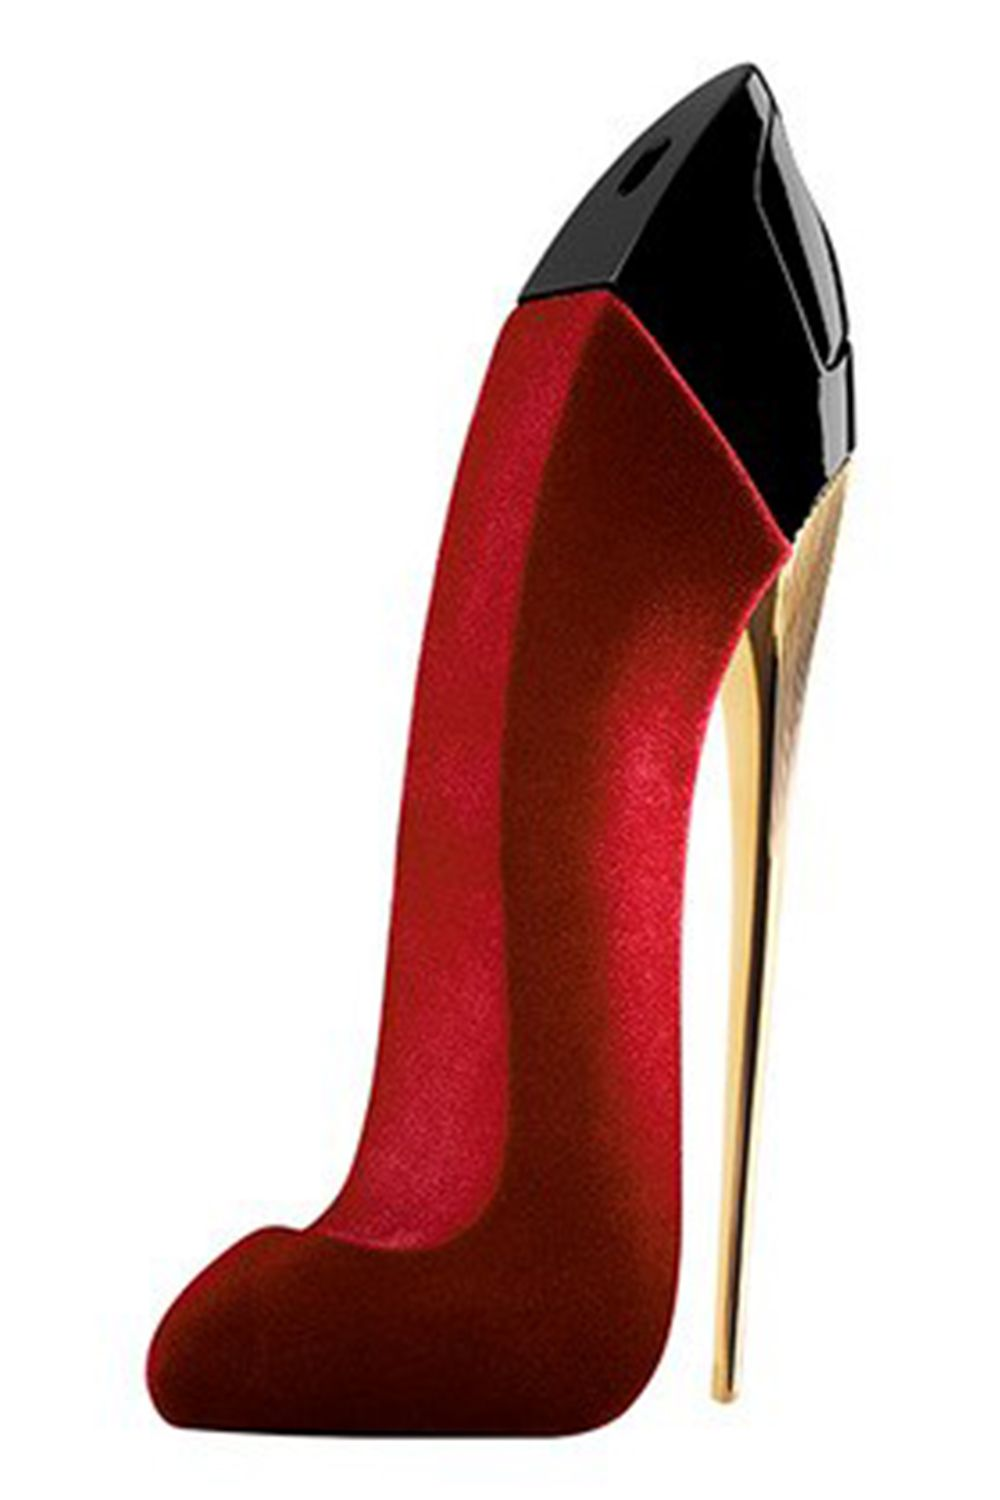 chanel no 5 limited edition red boots